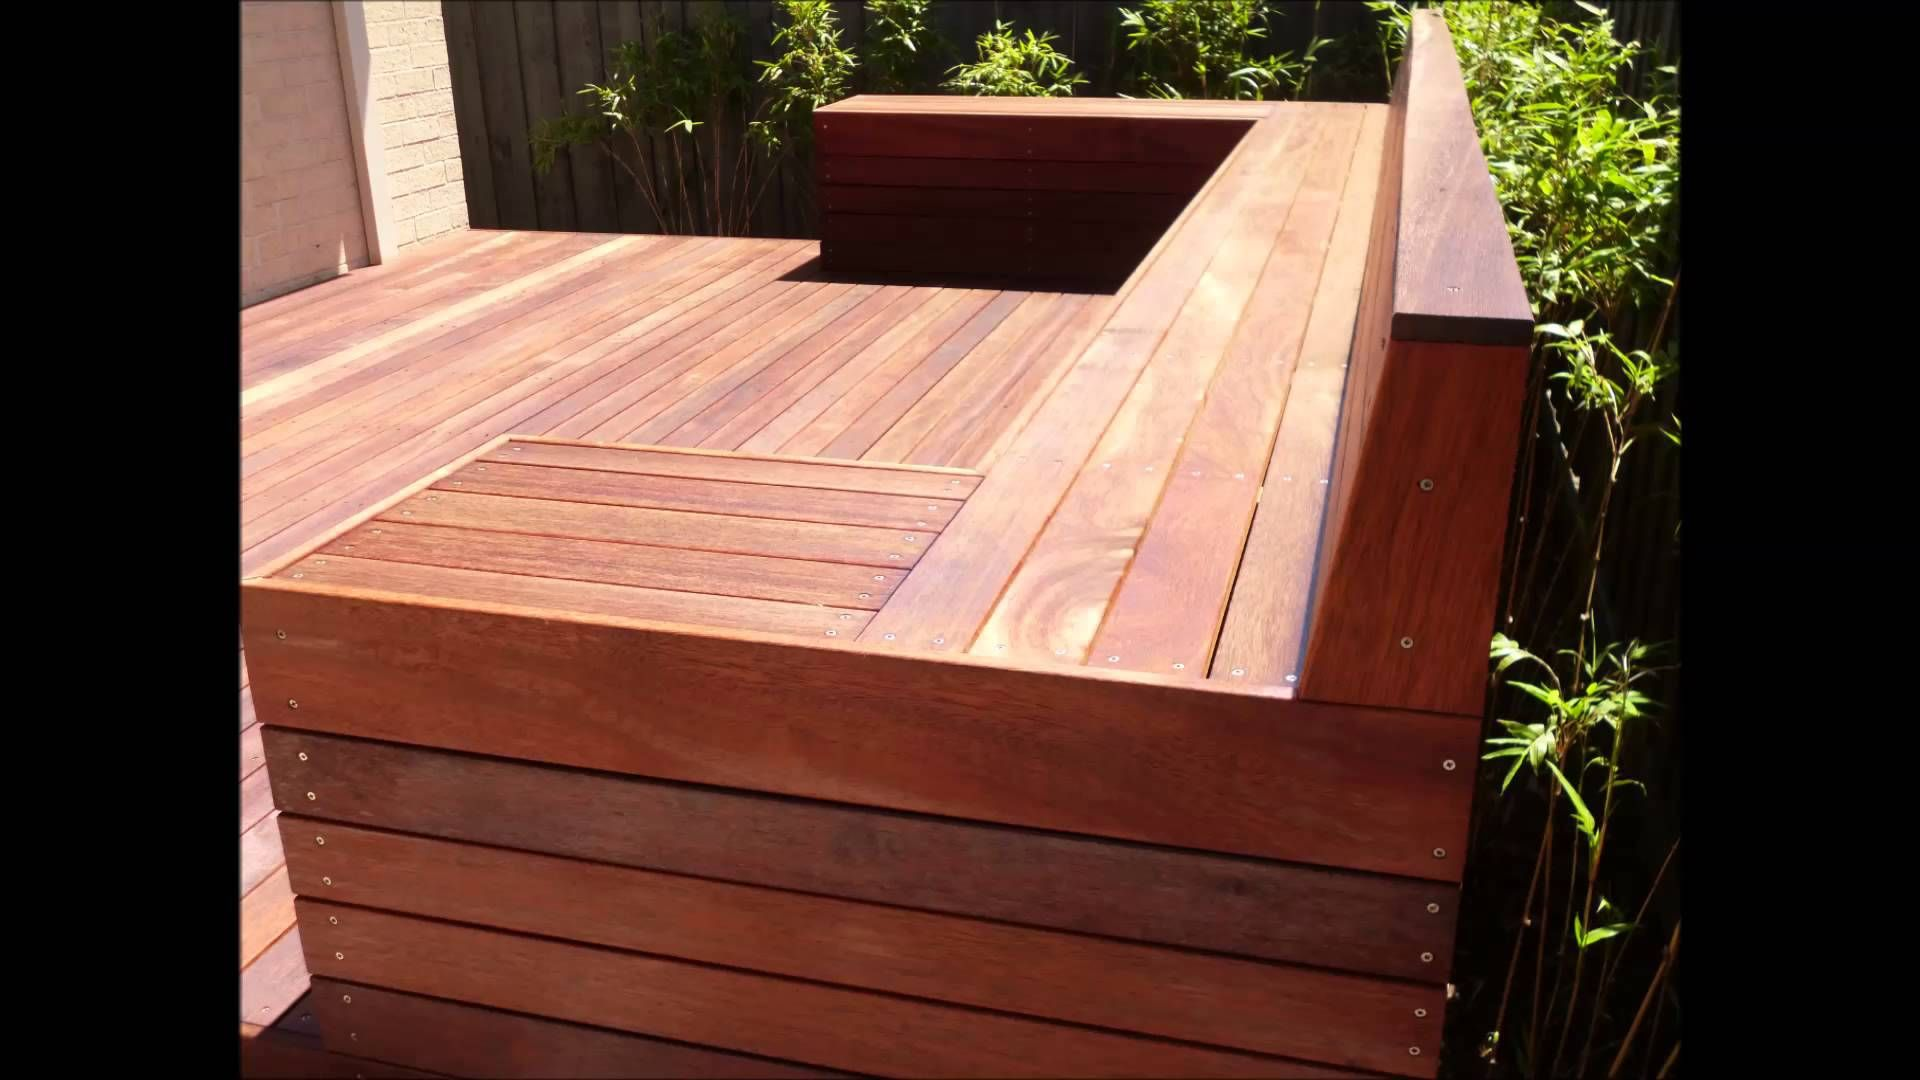 How To Build A Timber Deck With A Bench Seat Ddc Deck Bench Timber Deck Rustic Outdoor Benches